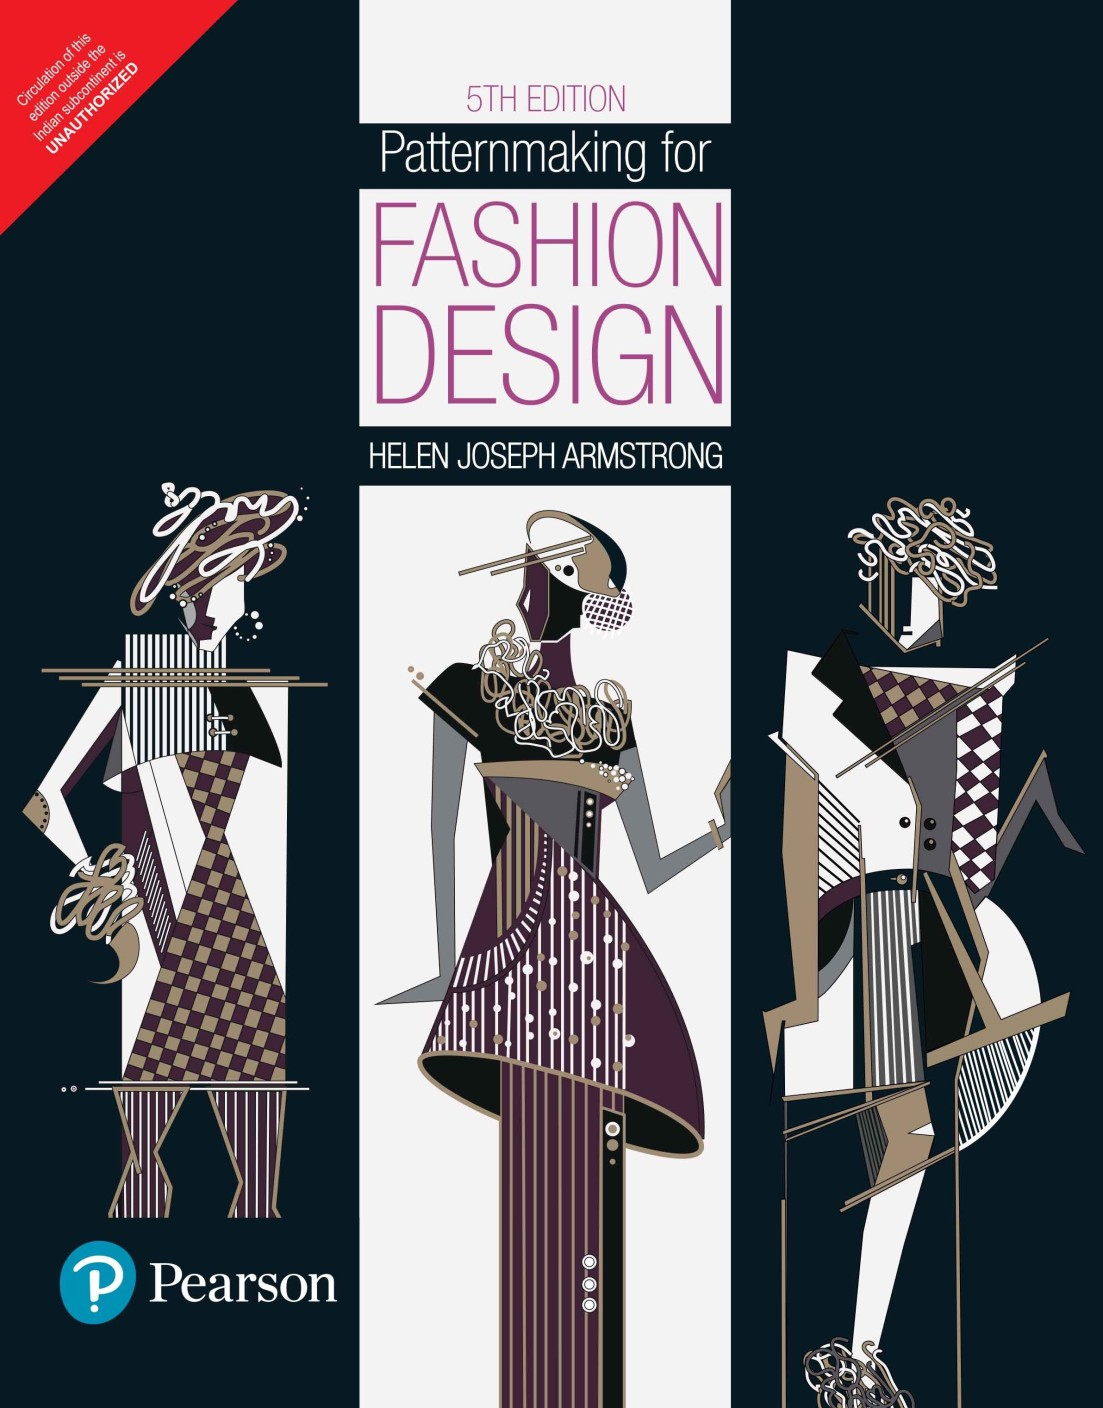 Patternmaking for fashion design 5th edition ebook 78